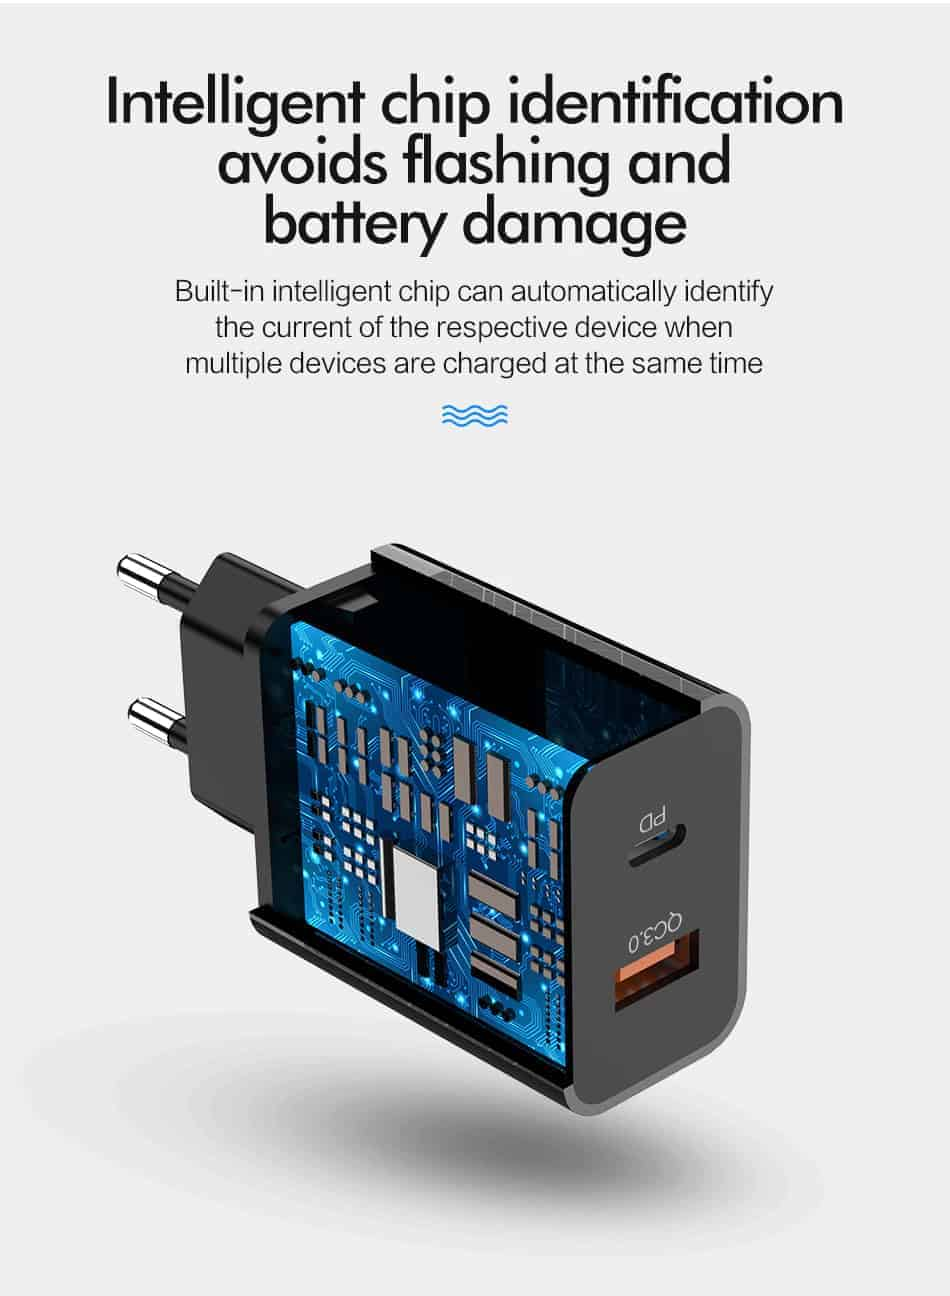 ROCK Quick Charge 4.0 36W QC PD 3.0 Phone Chargertelligent chip identification avoids flashing and battery damage